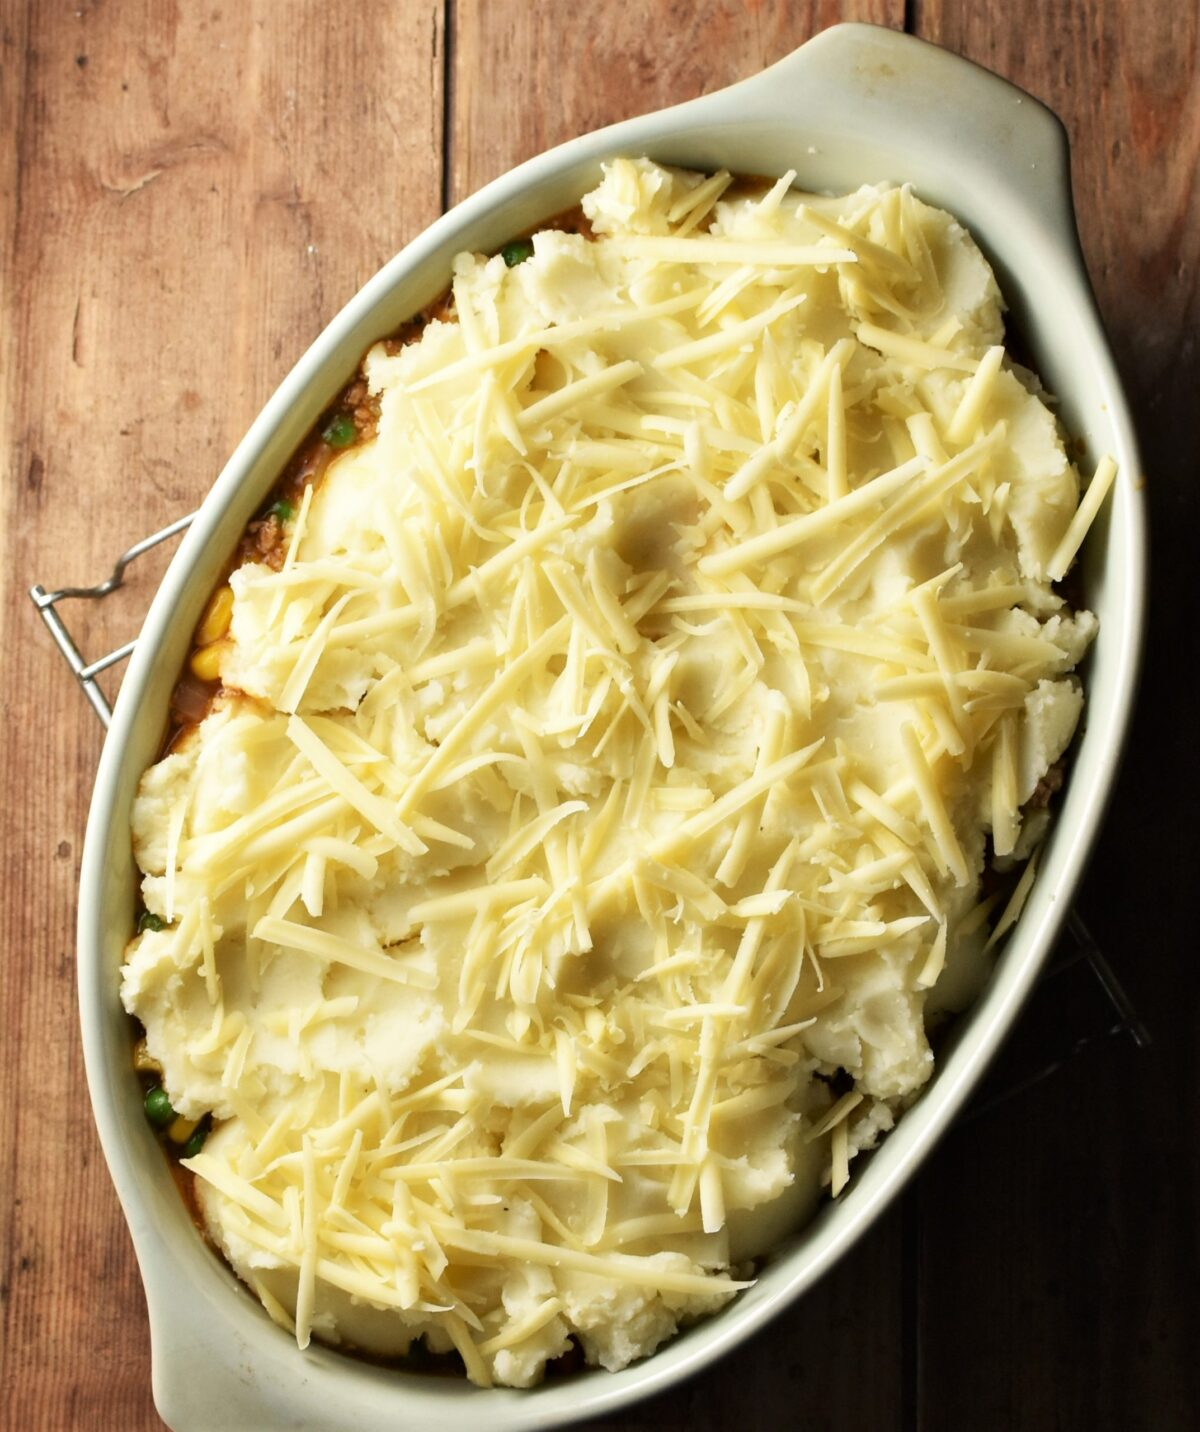 Pie topped with potato mash and grated cheese in green oval dish.